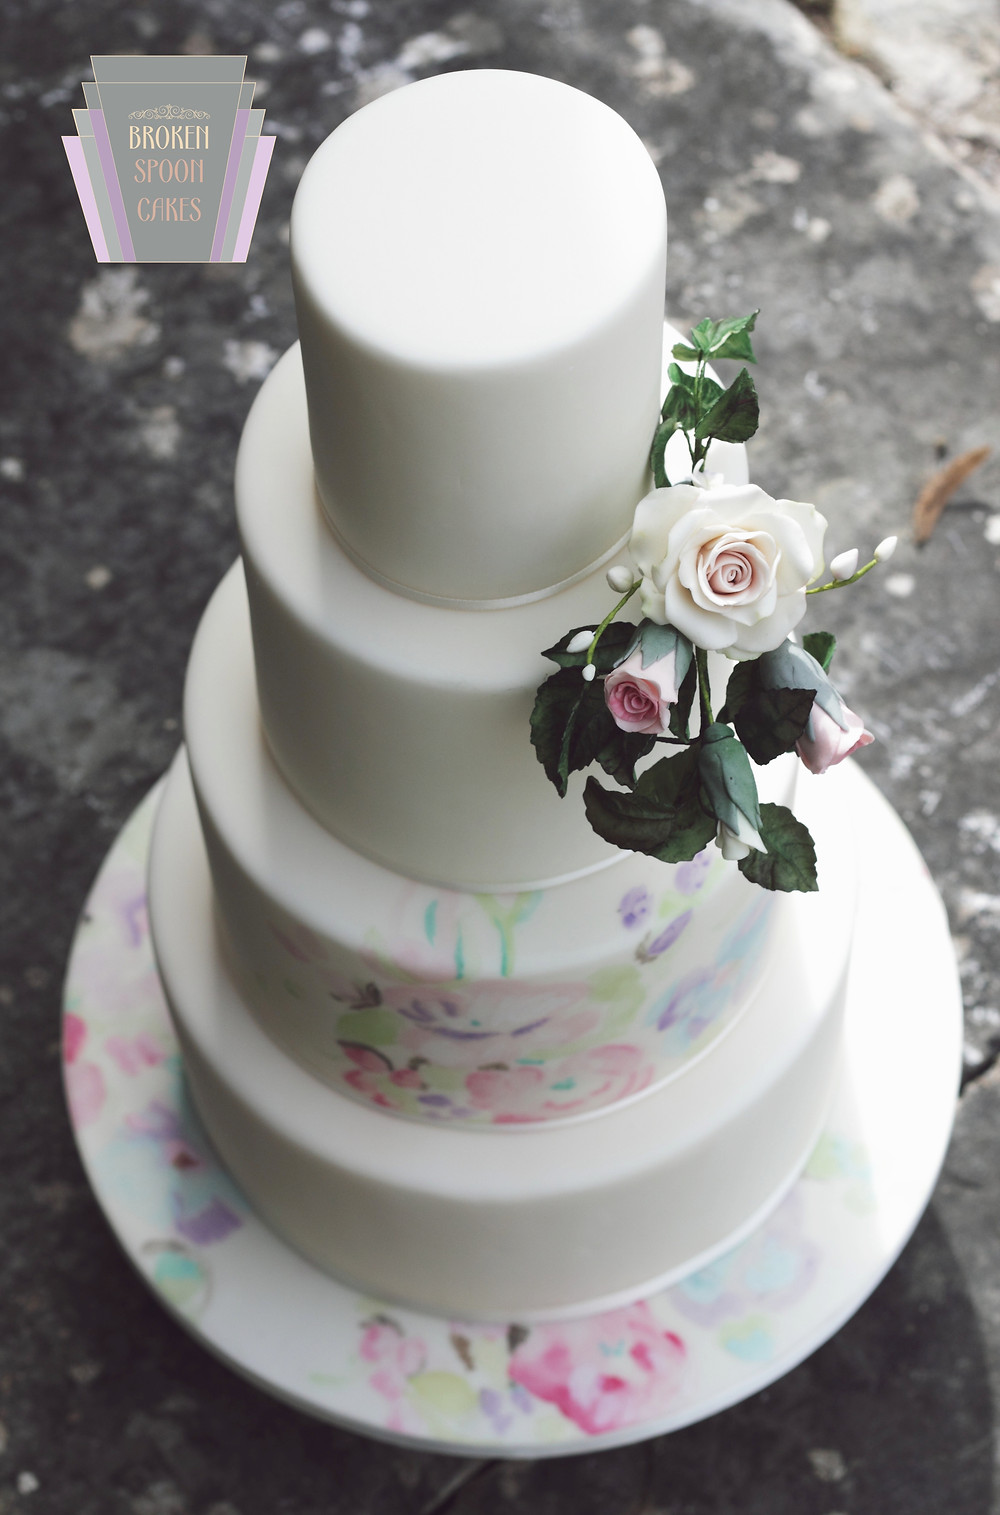 Broken Spoon Cakes | Untamed Love Wedding Cake | Image by Portraits By Patrick